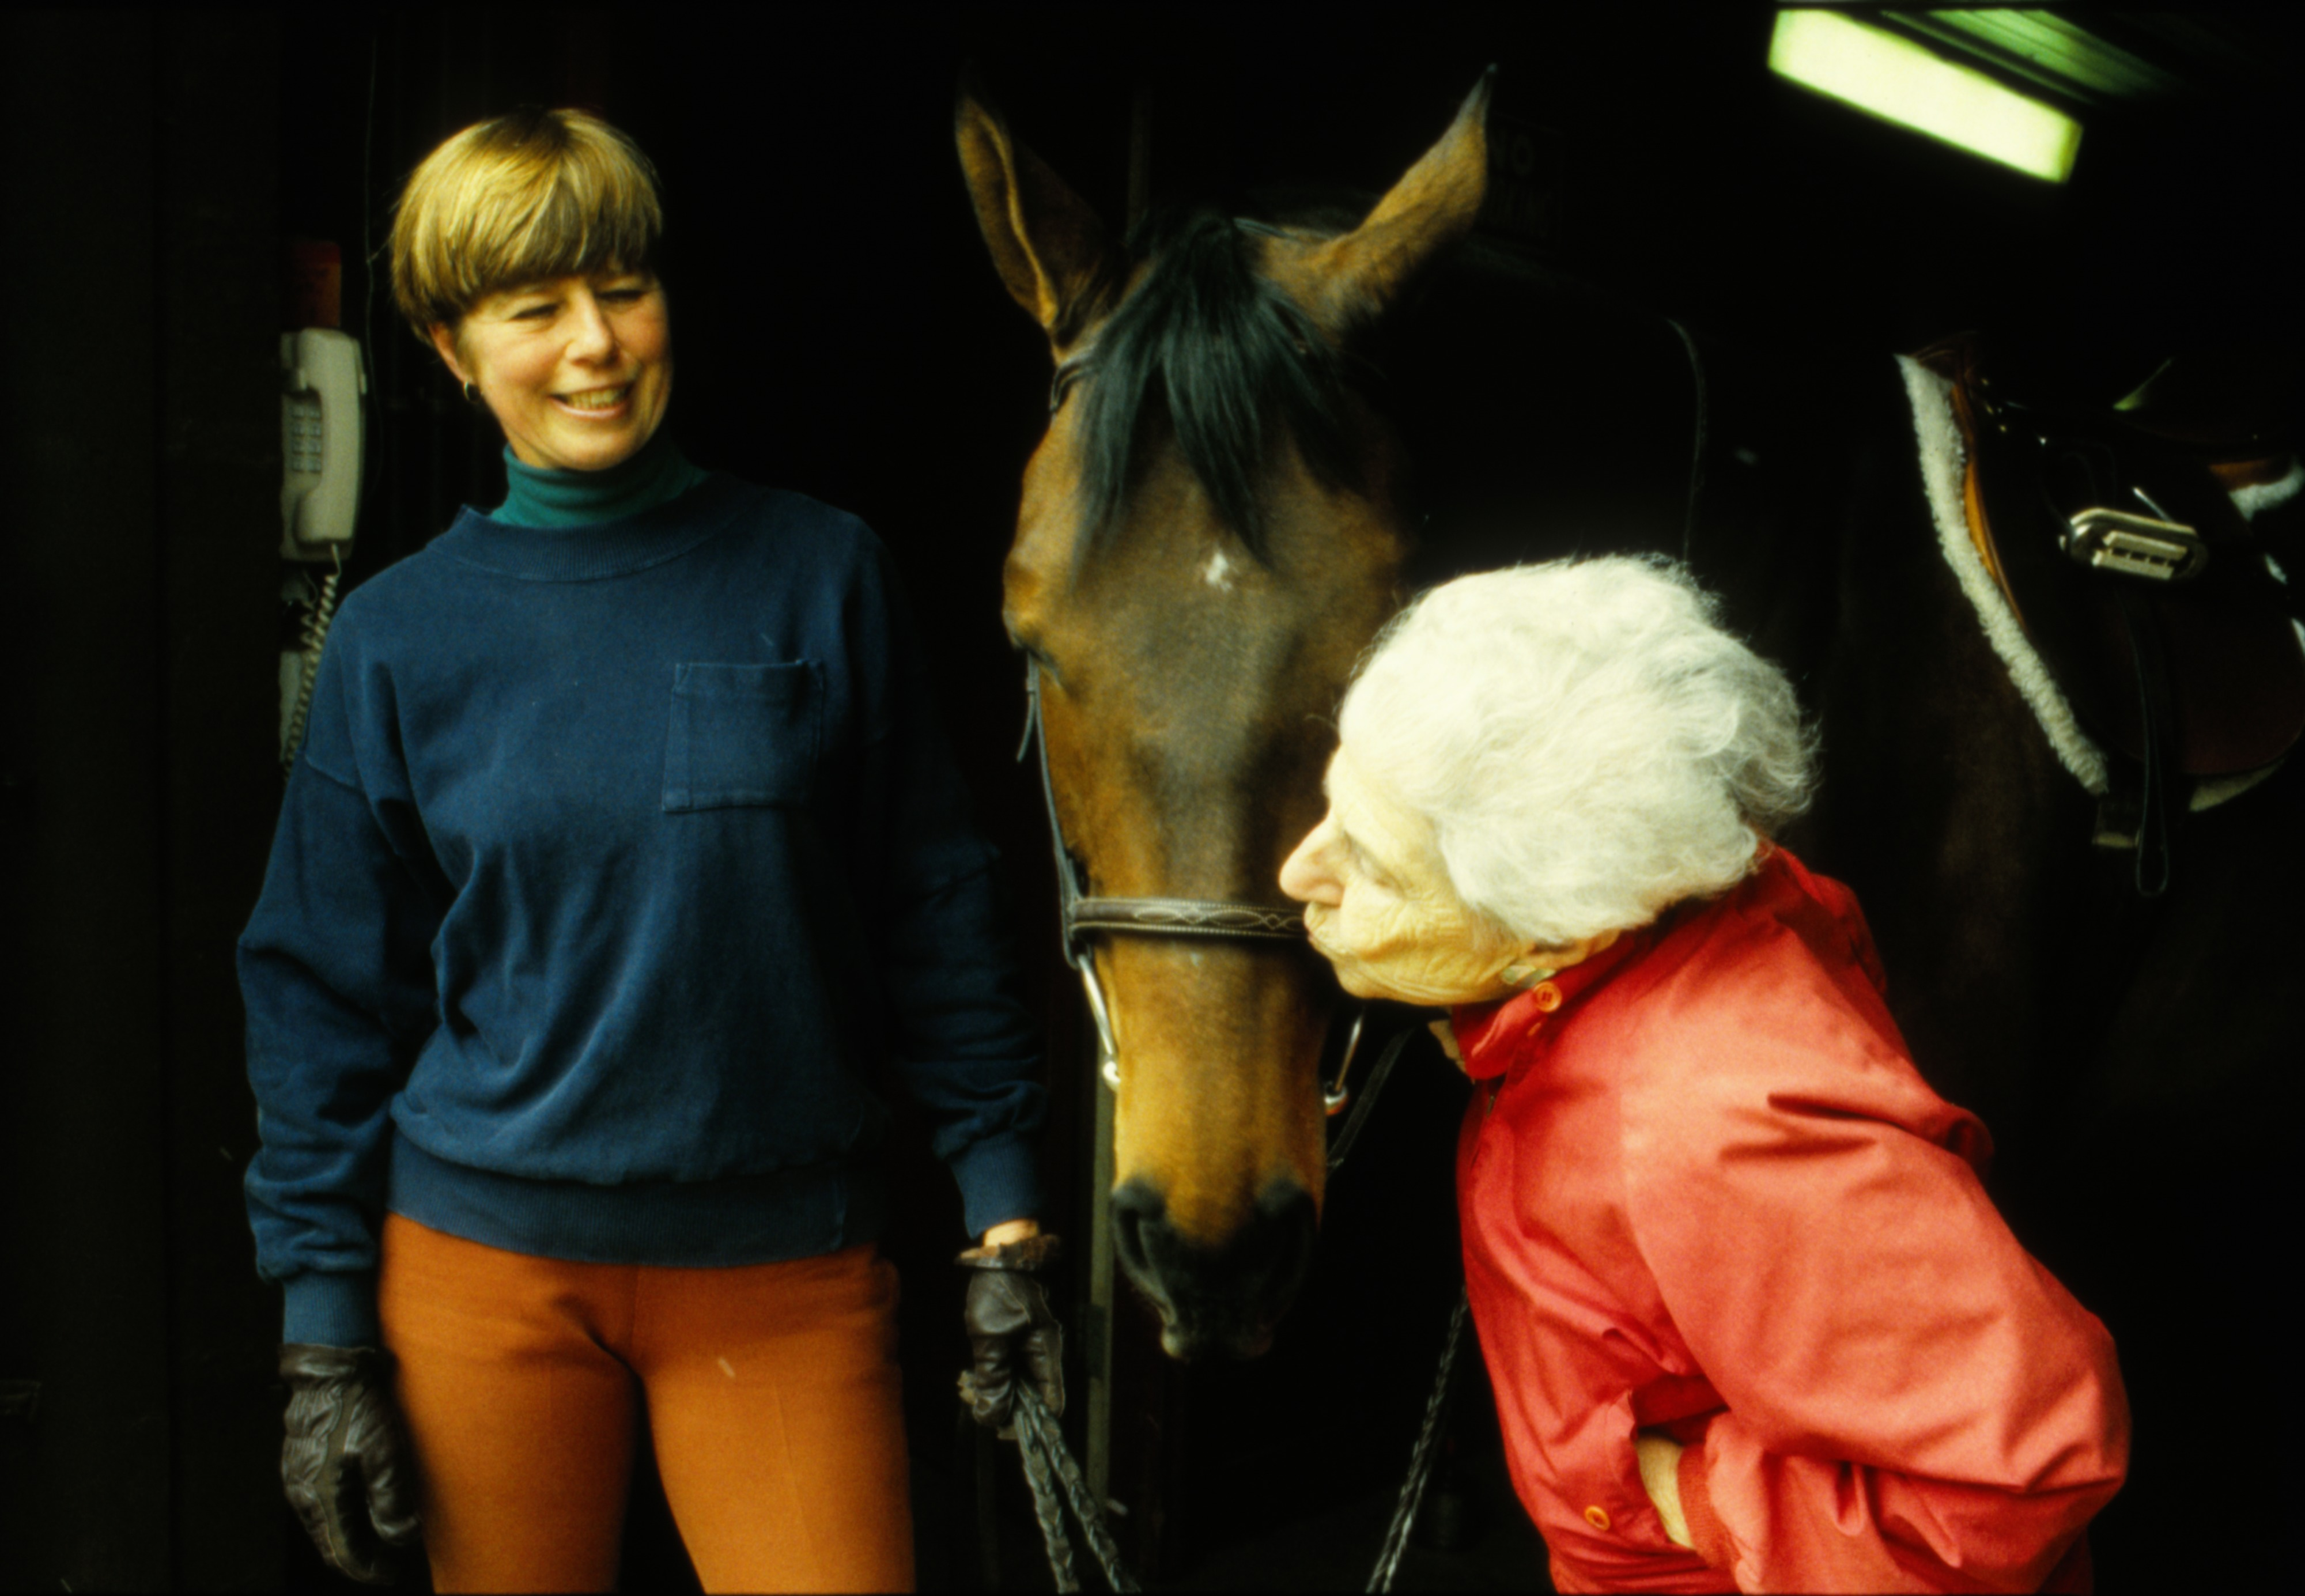 Cindy Carlson watches Ruth Everett give thoroughbred Elegant Jade a kiss, April 1991 image